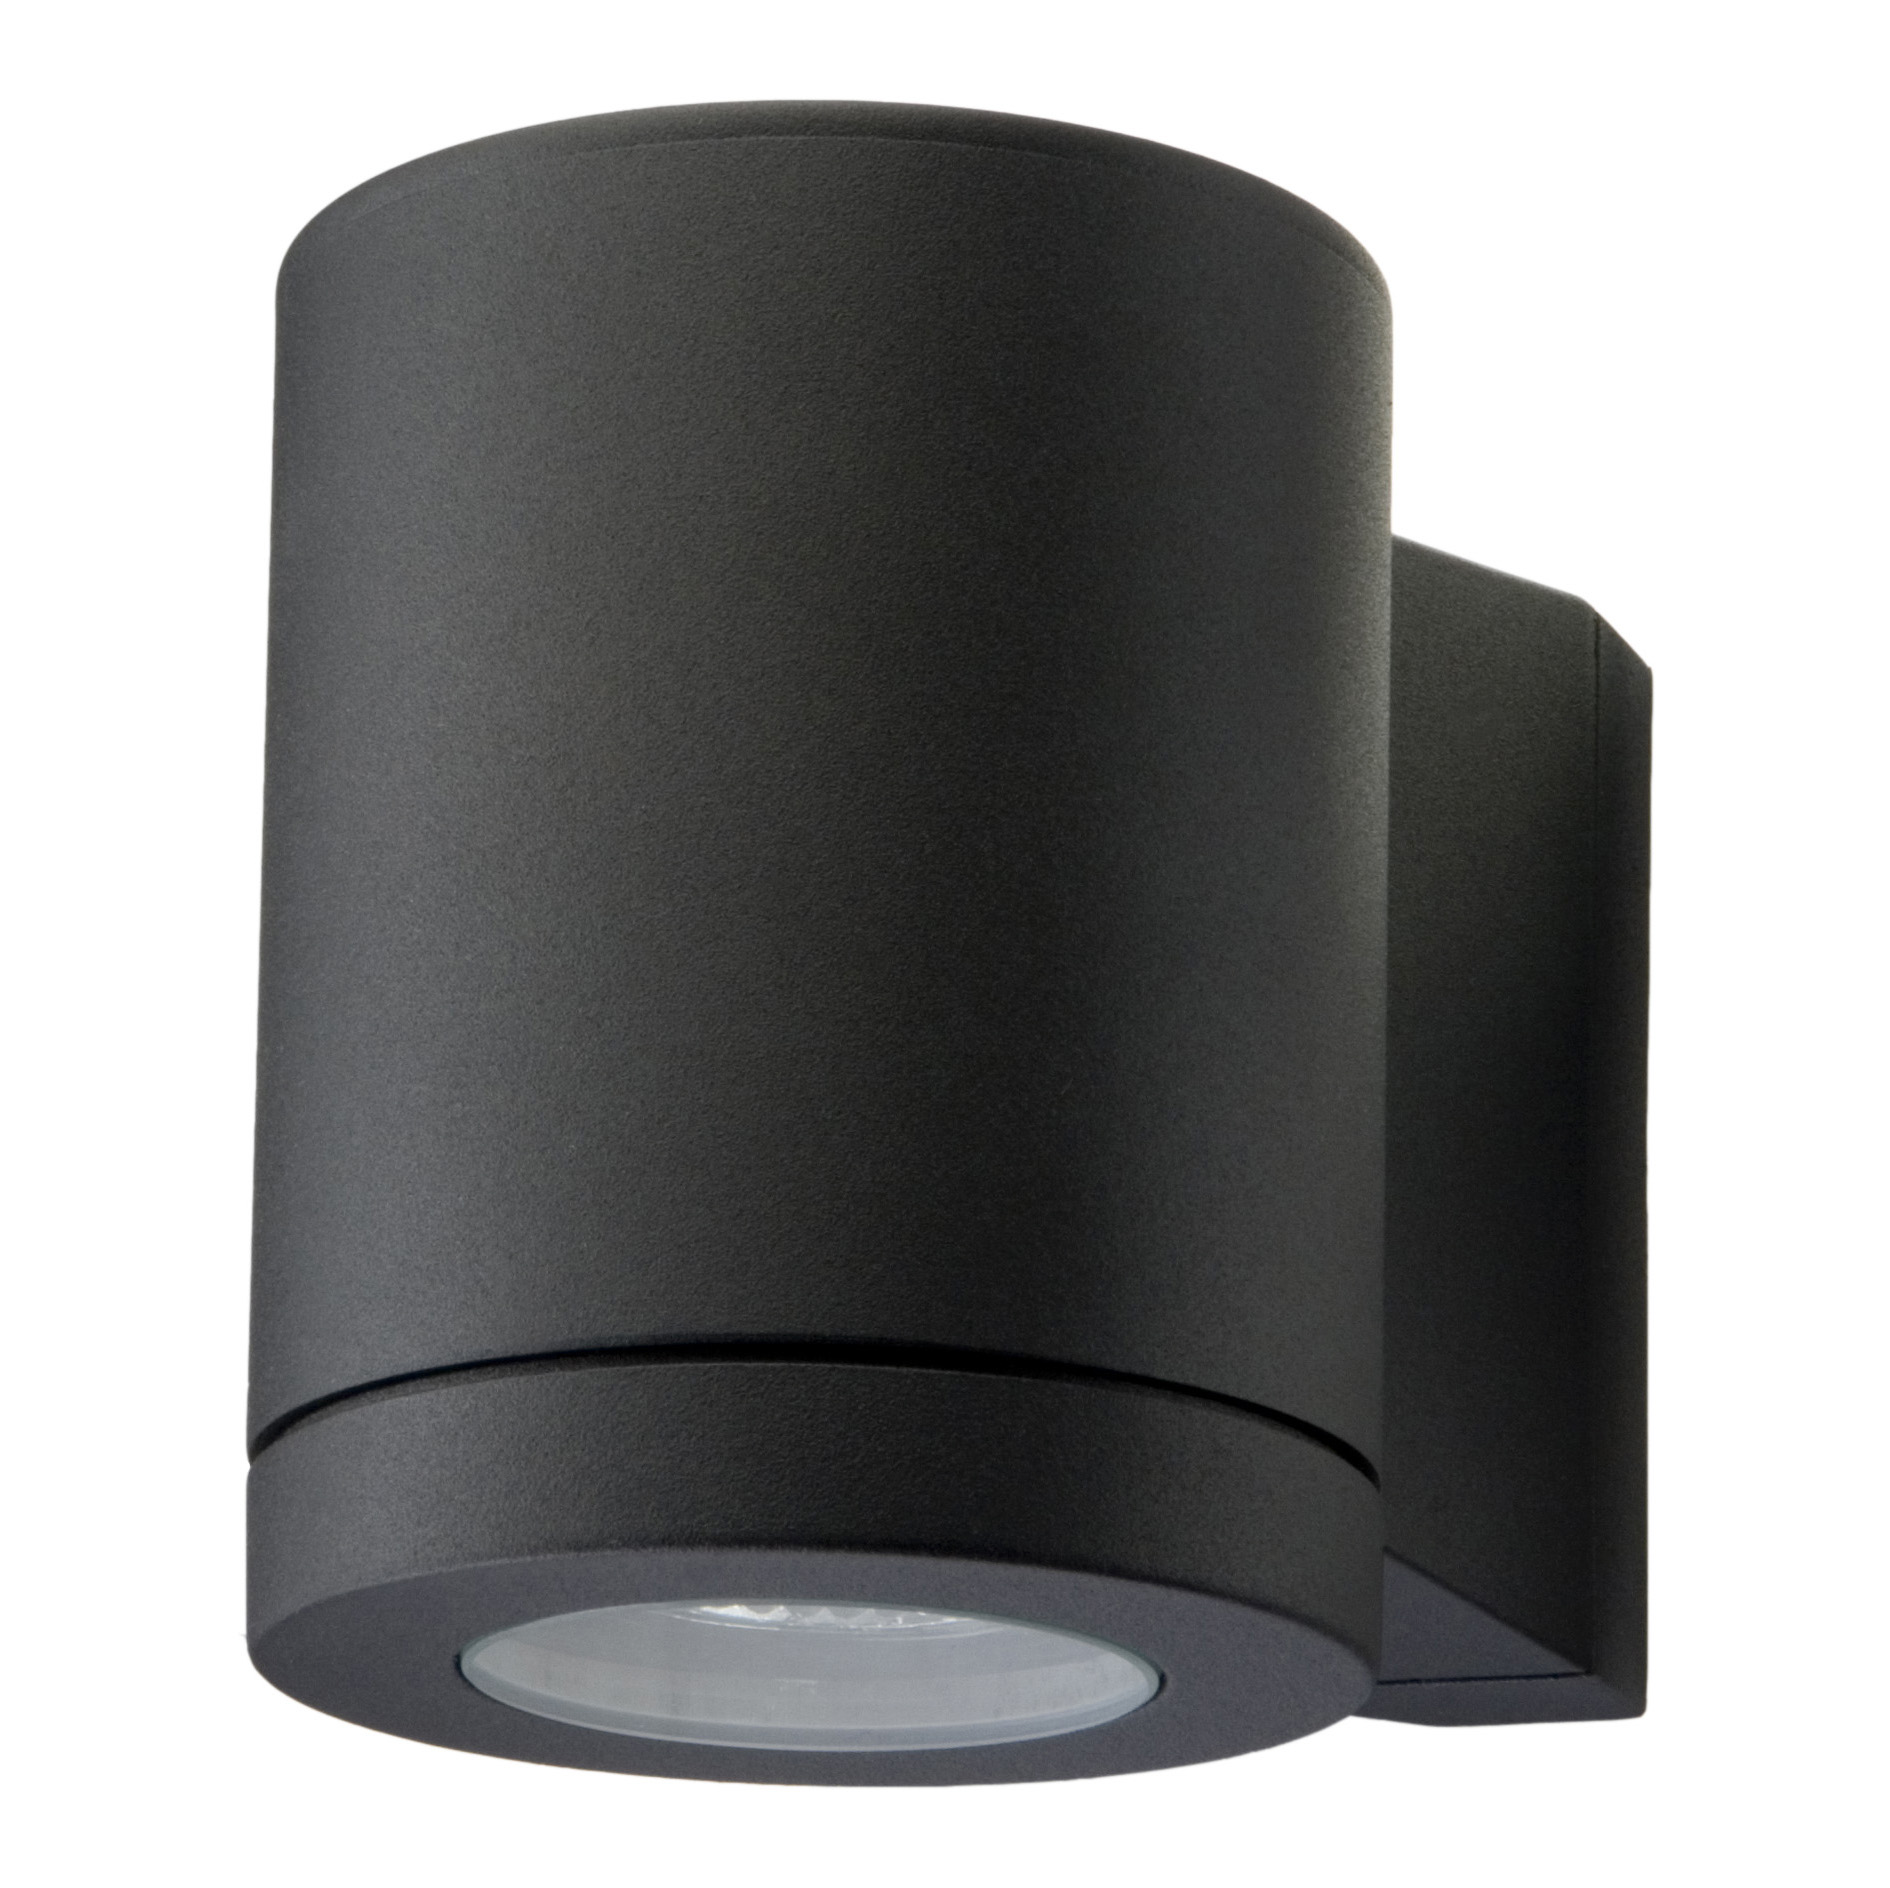 SG lighting LED Metro 35W zwart 614690 wand